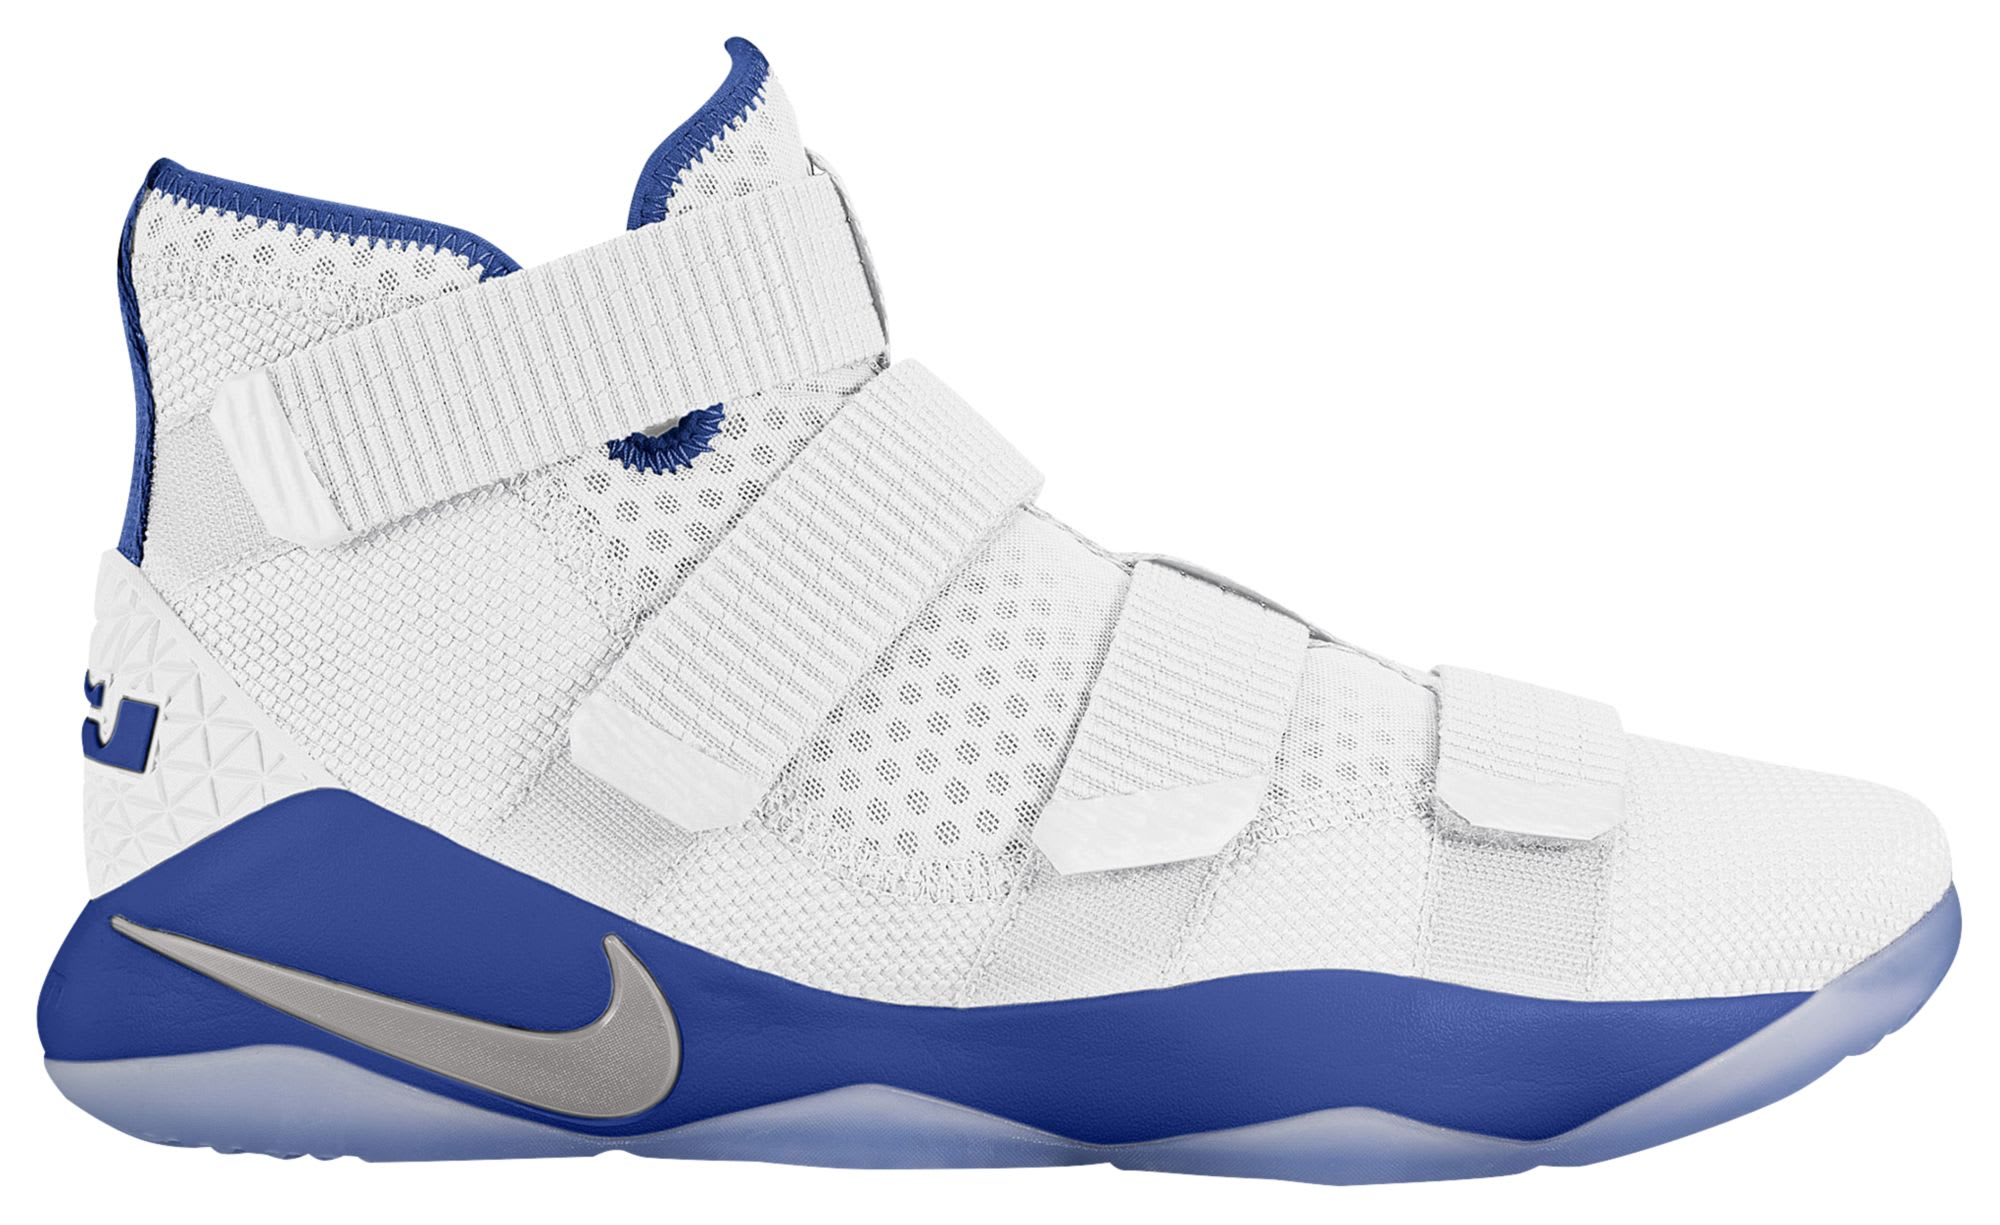 Nike LeBron Soldier 11 TB White Royal